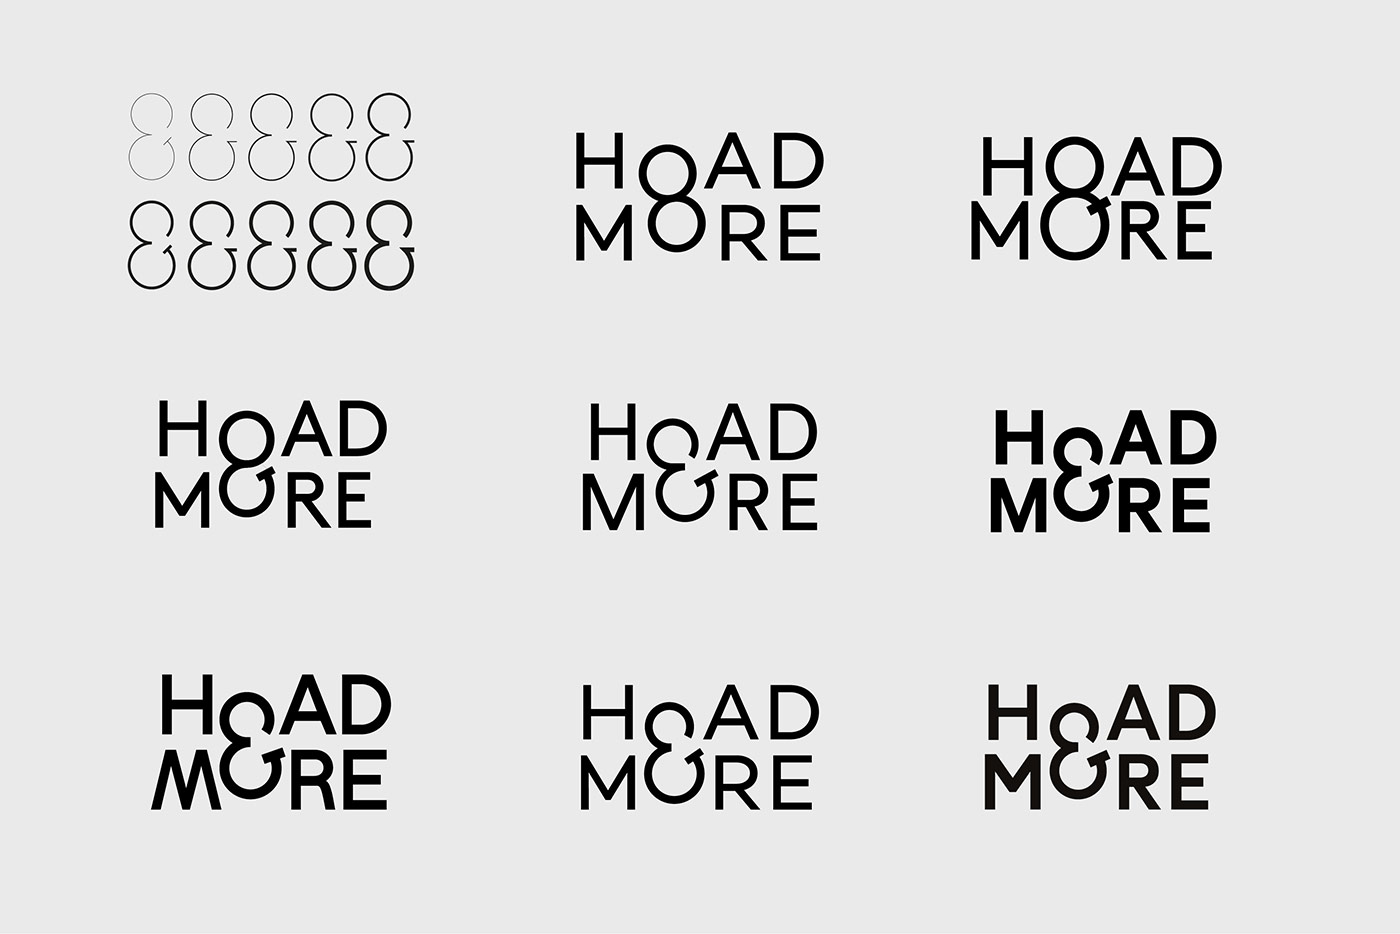 Hoad & More logo experiments